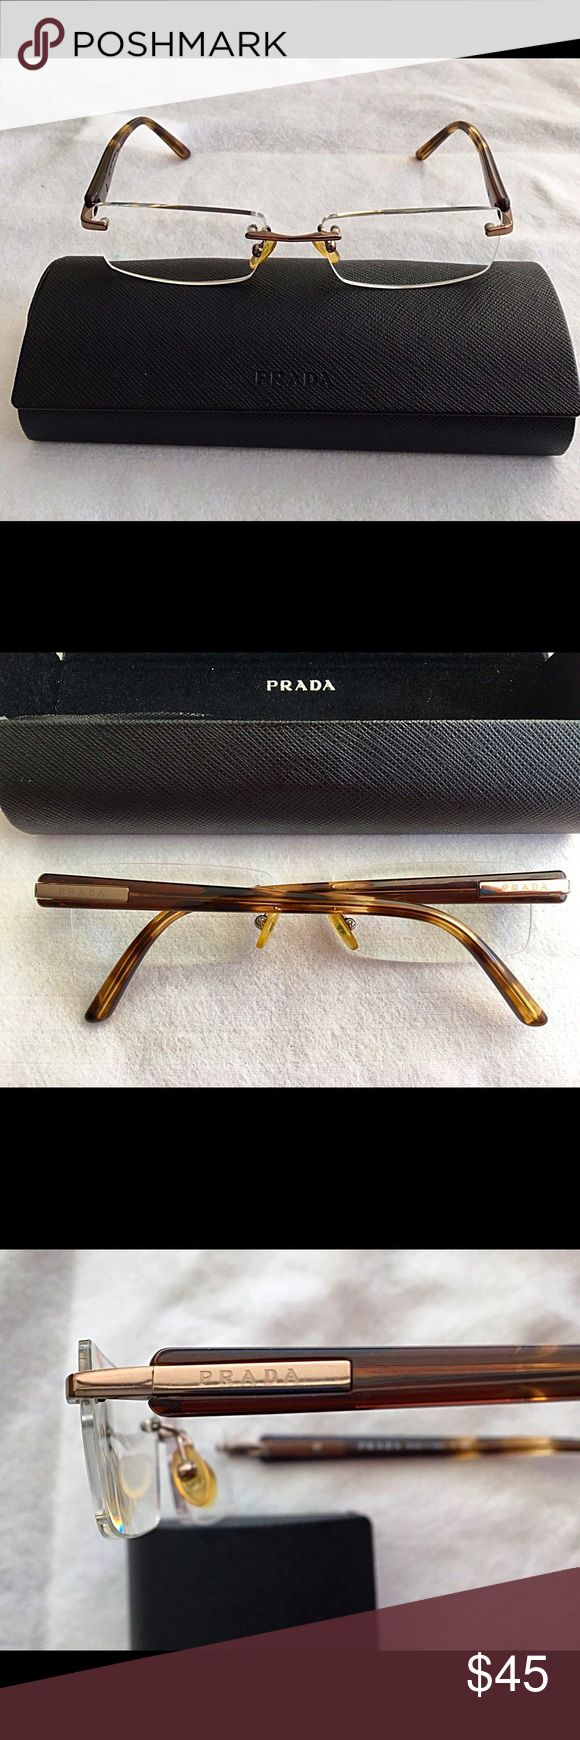 % Authentic Prada Rimless Eyeglass Frames! Rimless Prada women's eyeglass frames with tortoise shell temples. gently used with no visible signs of wear! Prada case has some signs of wear from use as seen on the photos. Prada Accessories Glasses